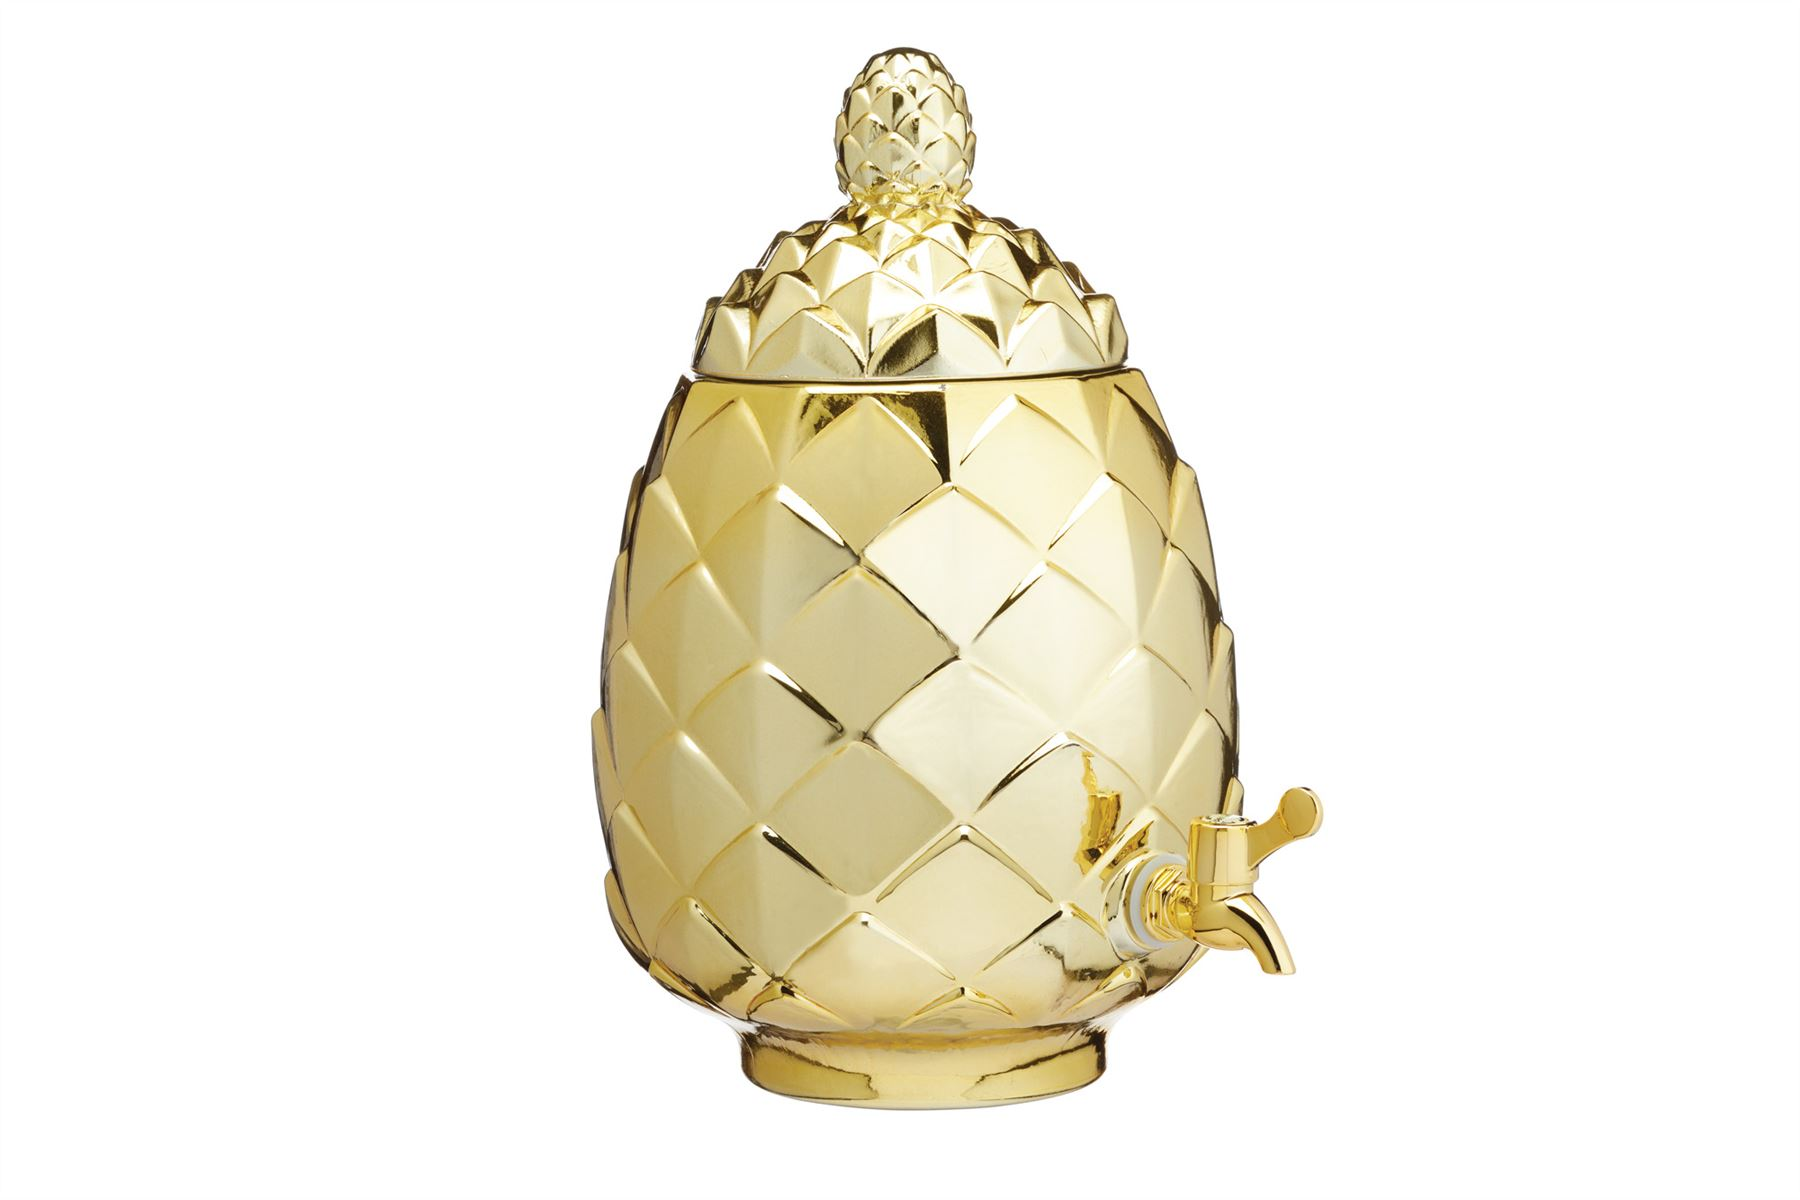 Yellow Möbel Recamiere Dispenser Pineapple Shaped Glass Barcraft Glass Drinks Gold